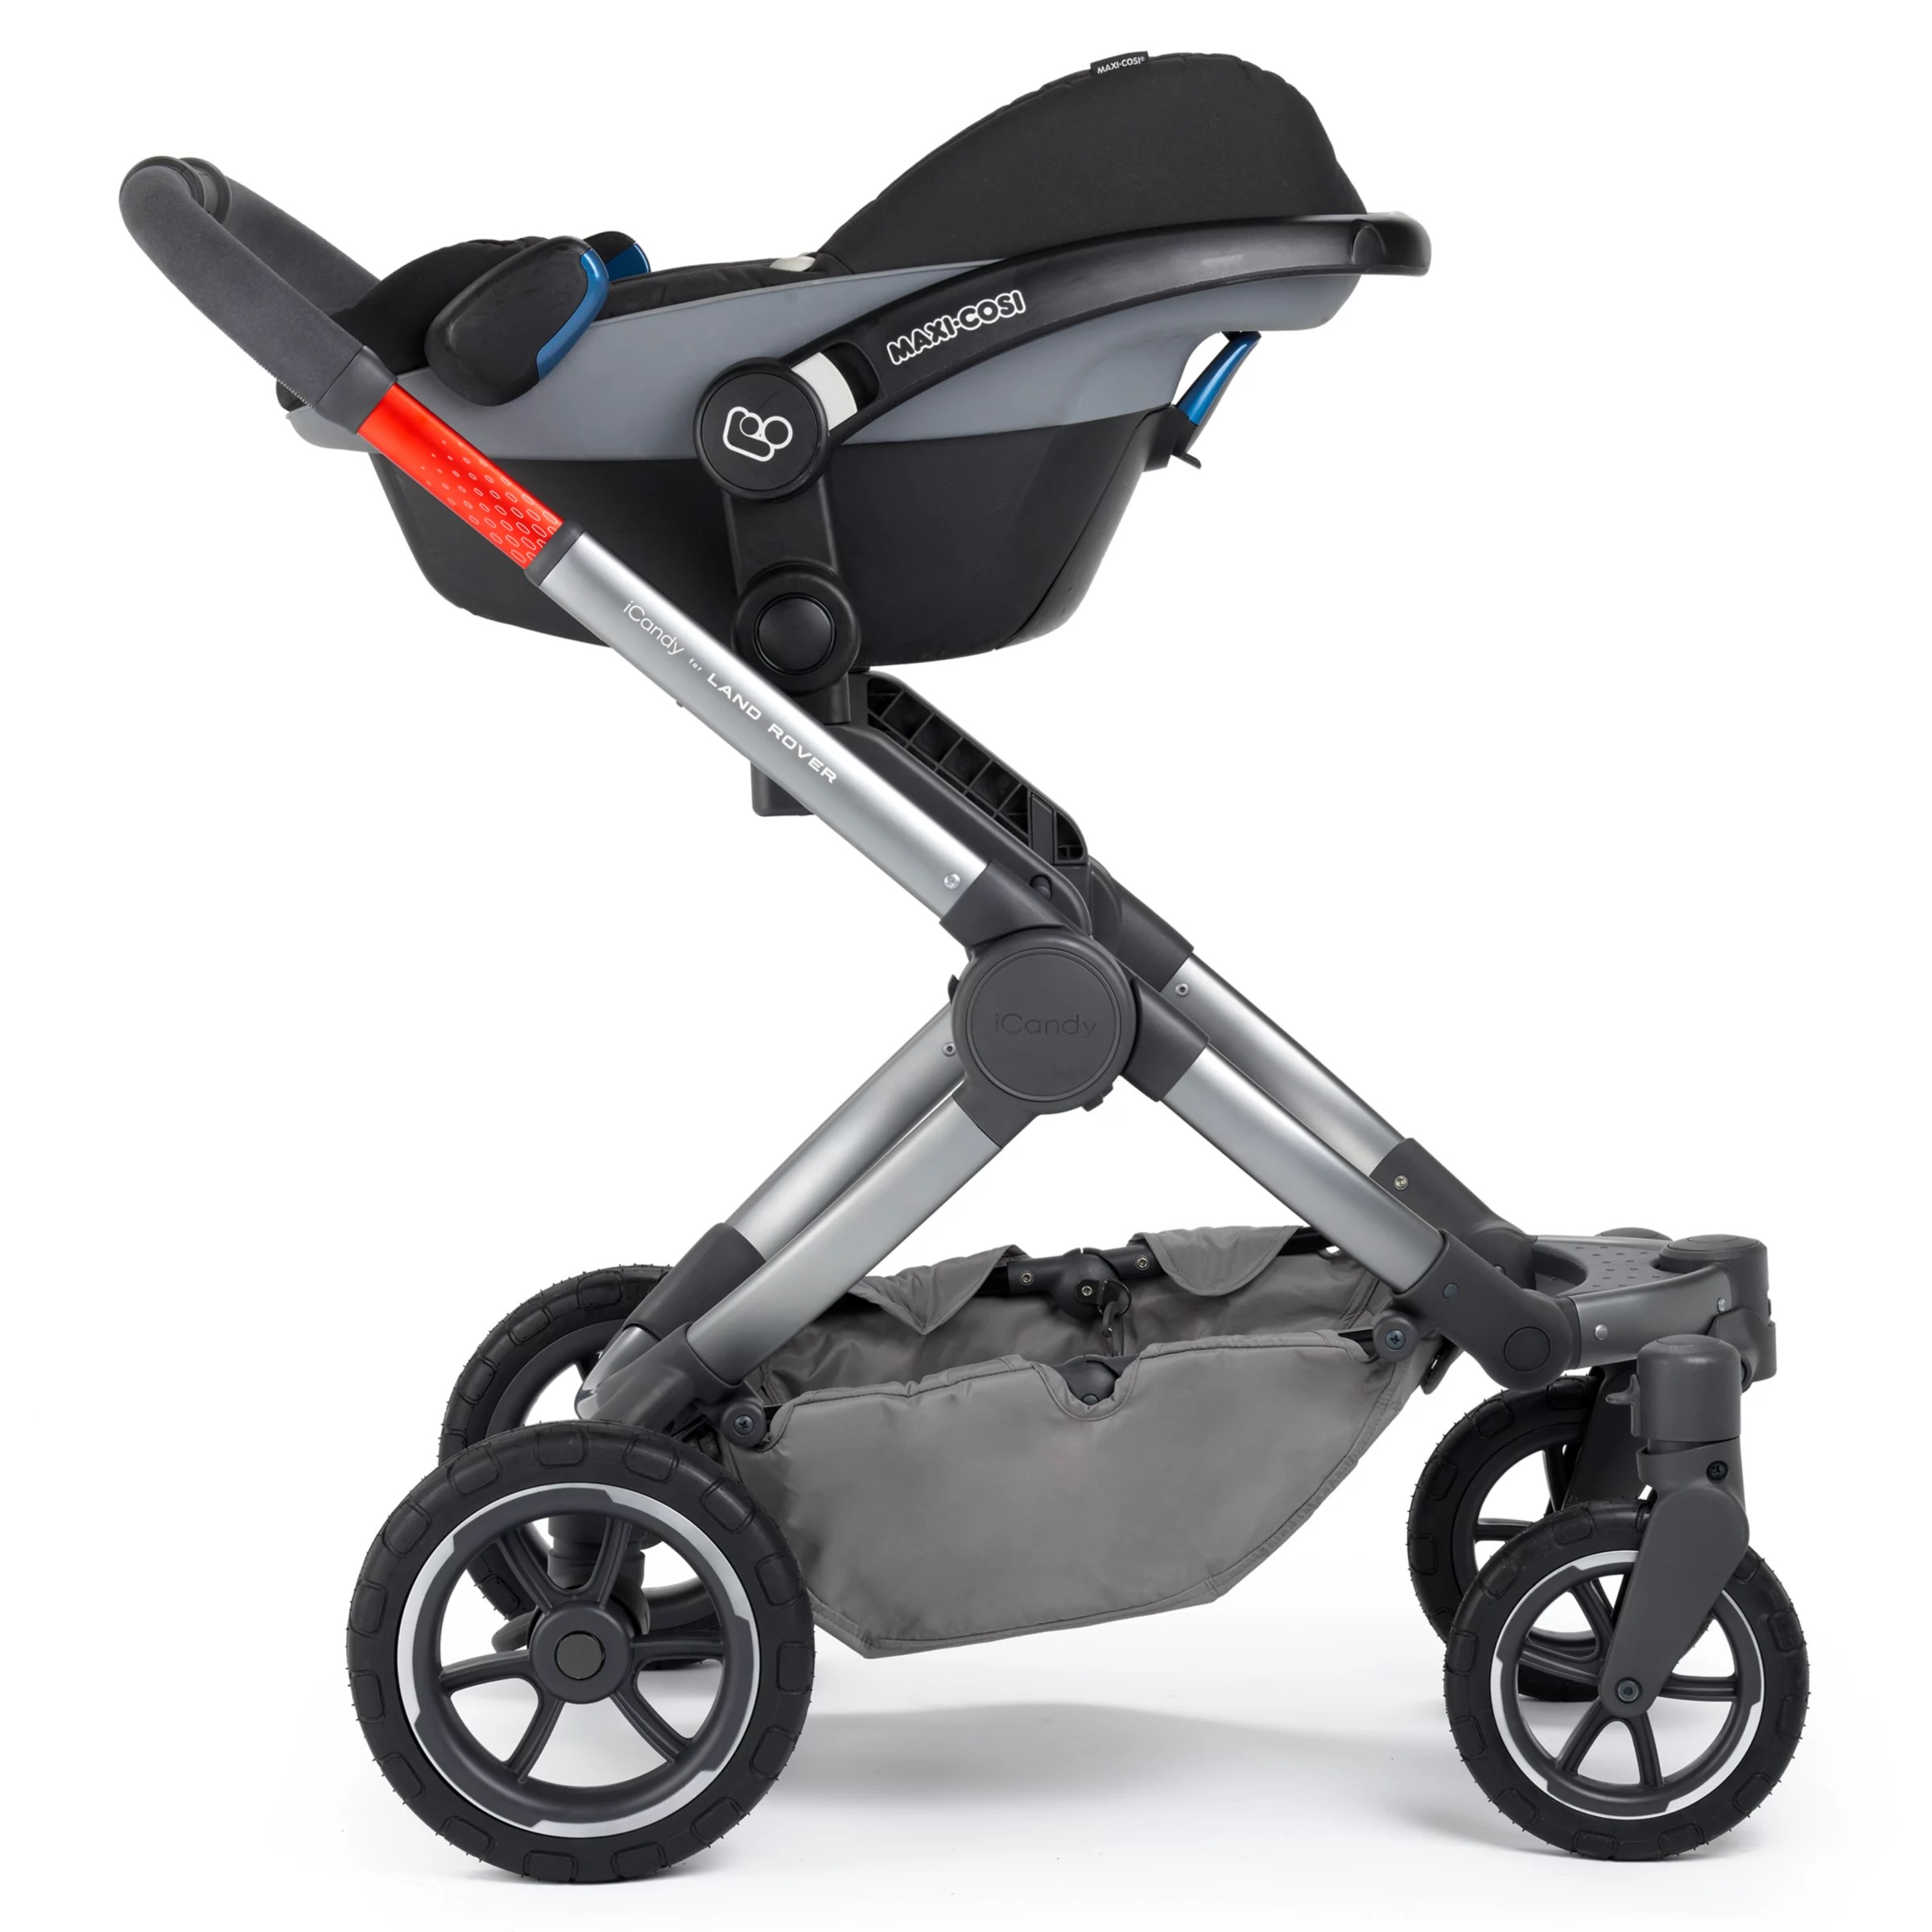 Maxi Cosi Kinderwagen Outdoor Icandy For Landrover Peach All Terrain Special Edition Pushchair And Carrycot